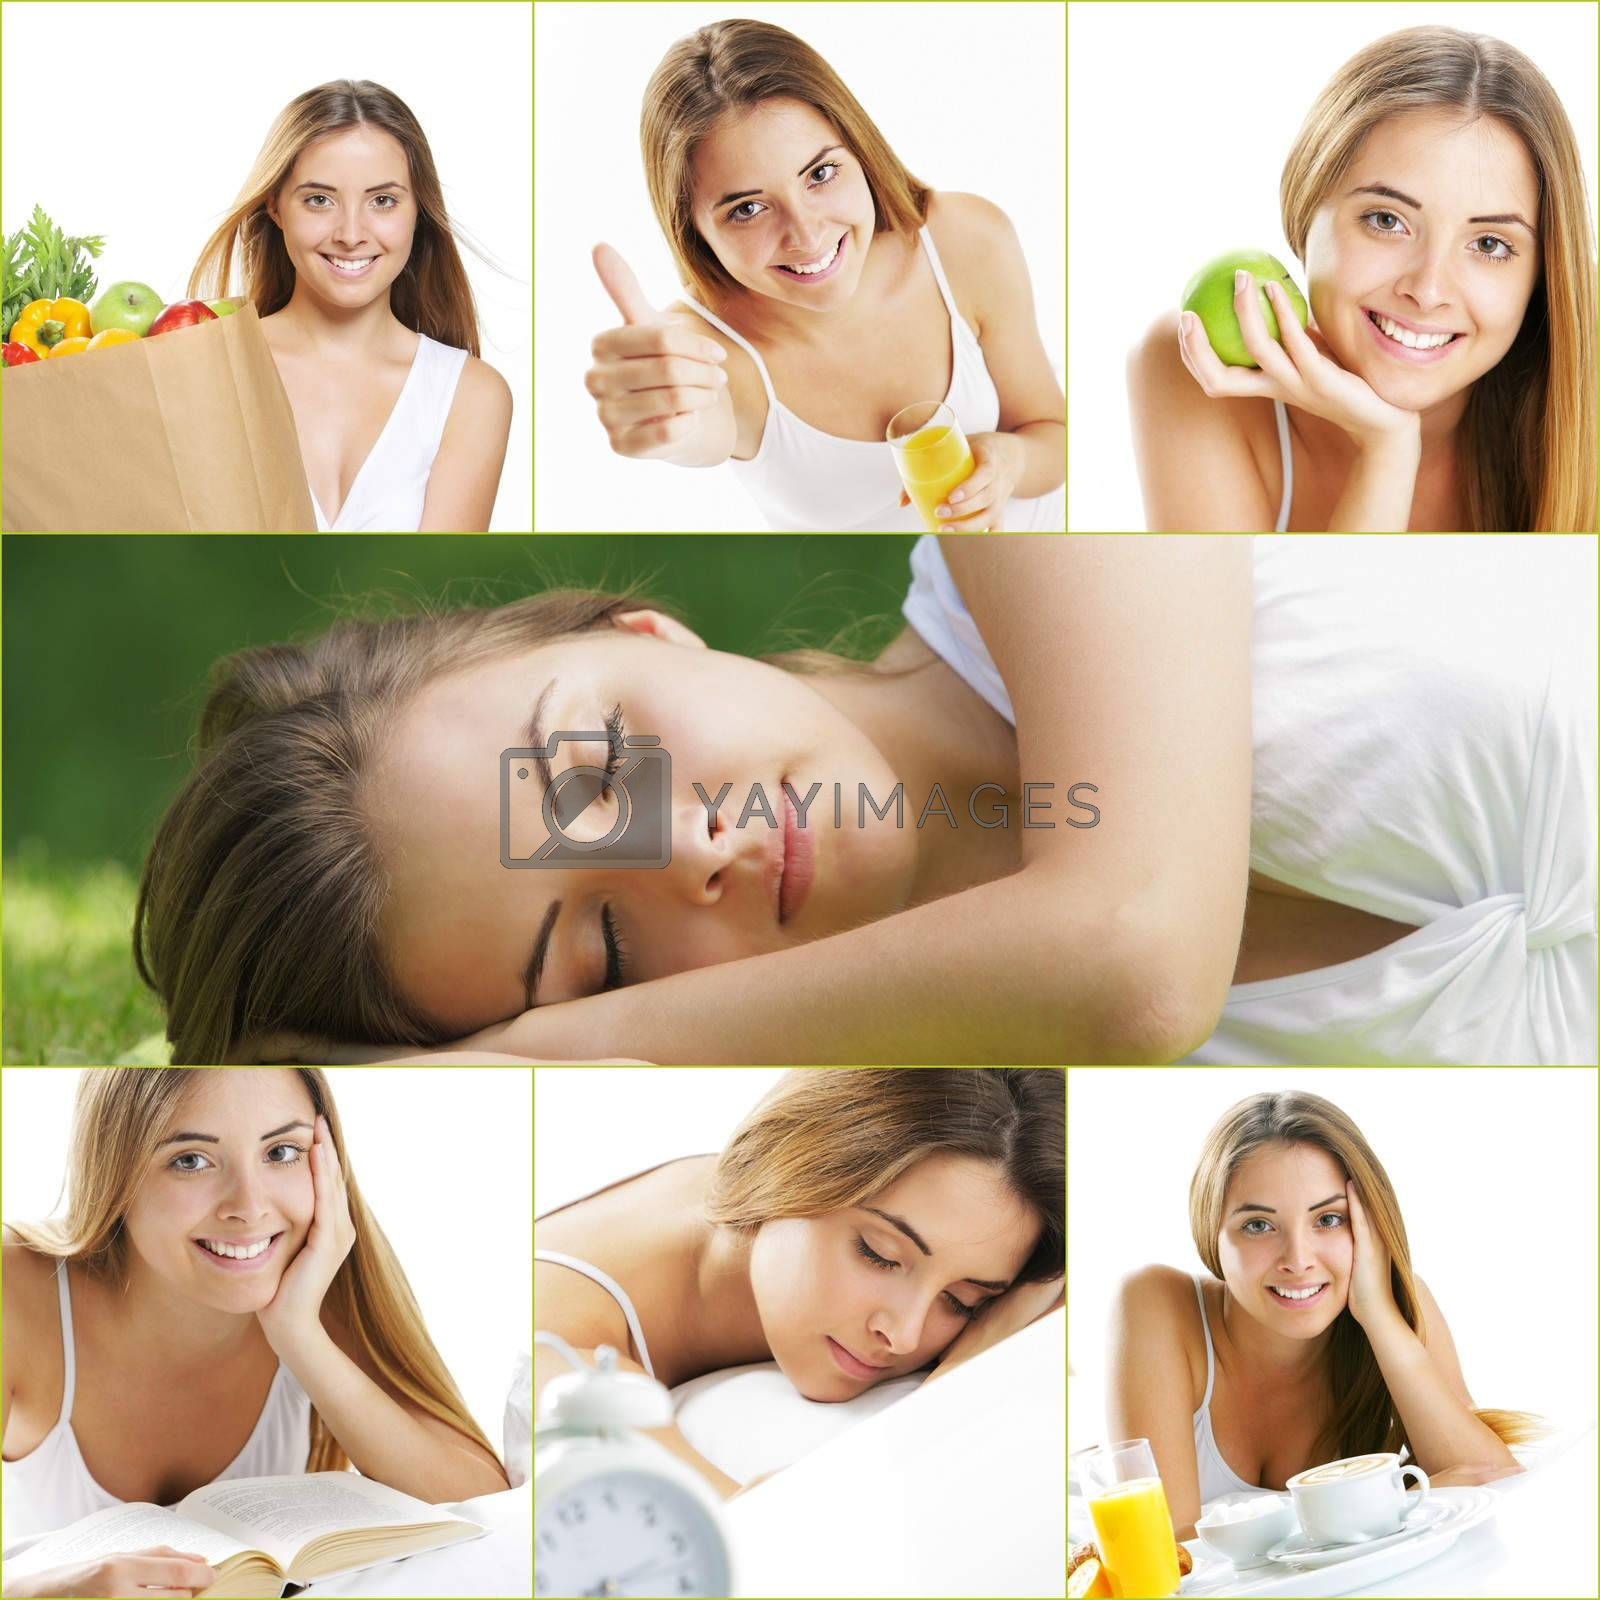 Healthy lifestyle, a collage of images